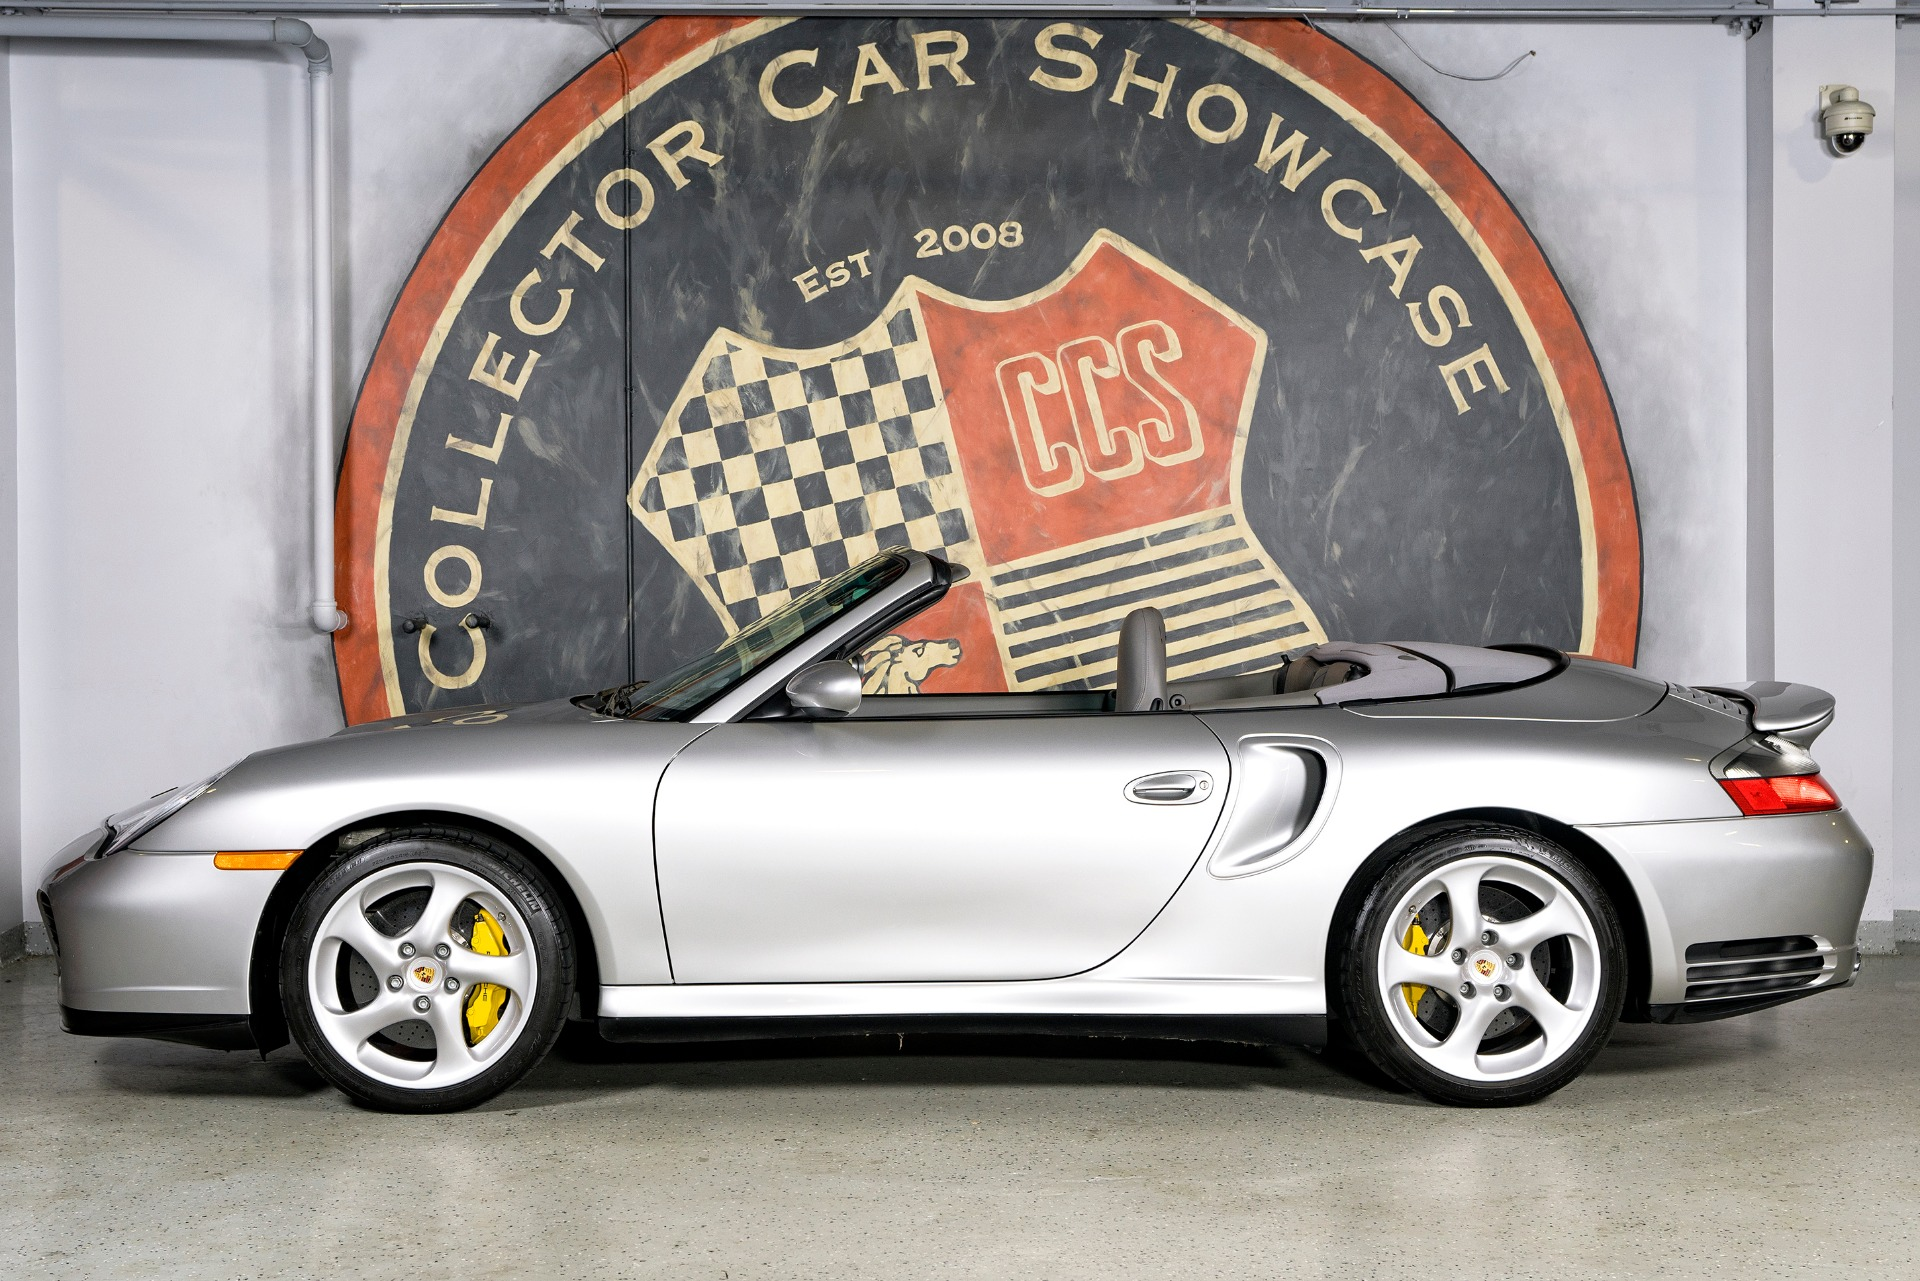 2005 Porsche 911 Turbo S Cabriolet Stock 1406 For Sale